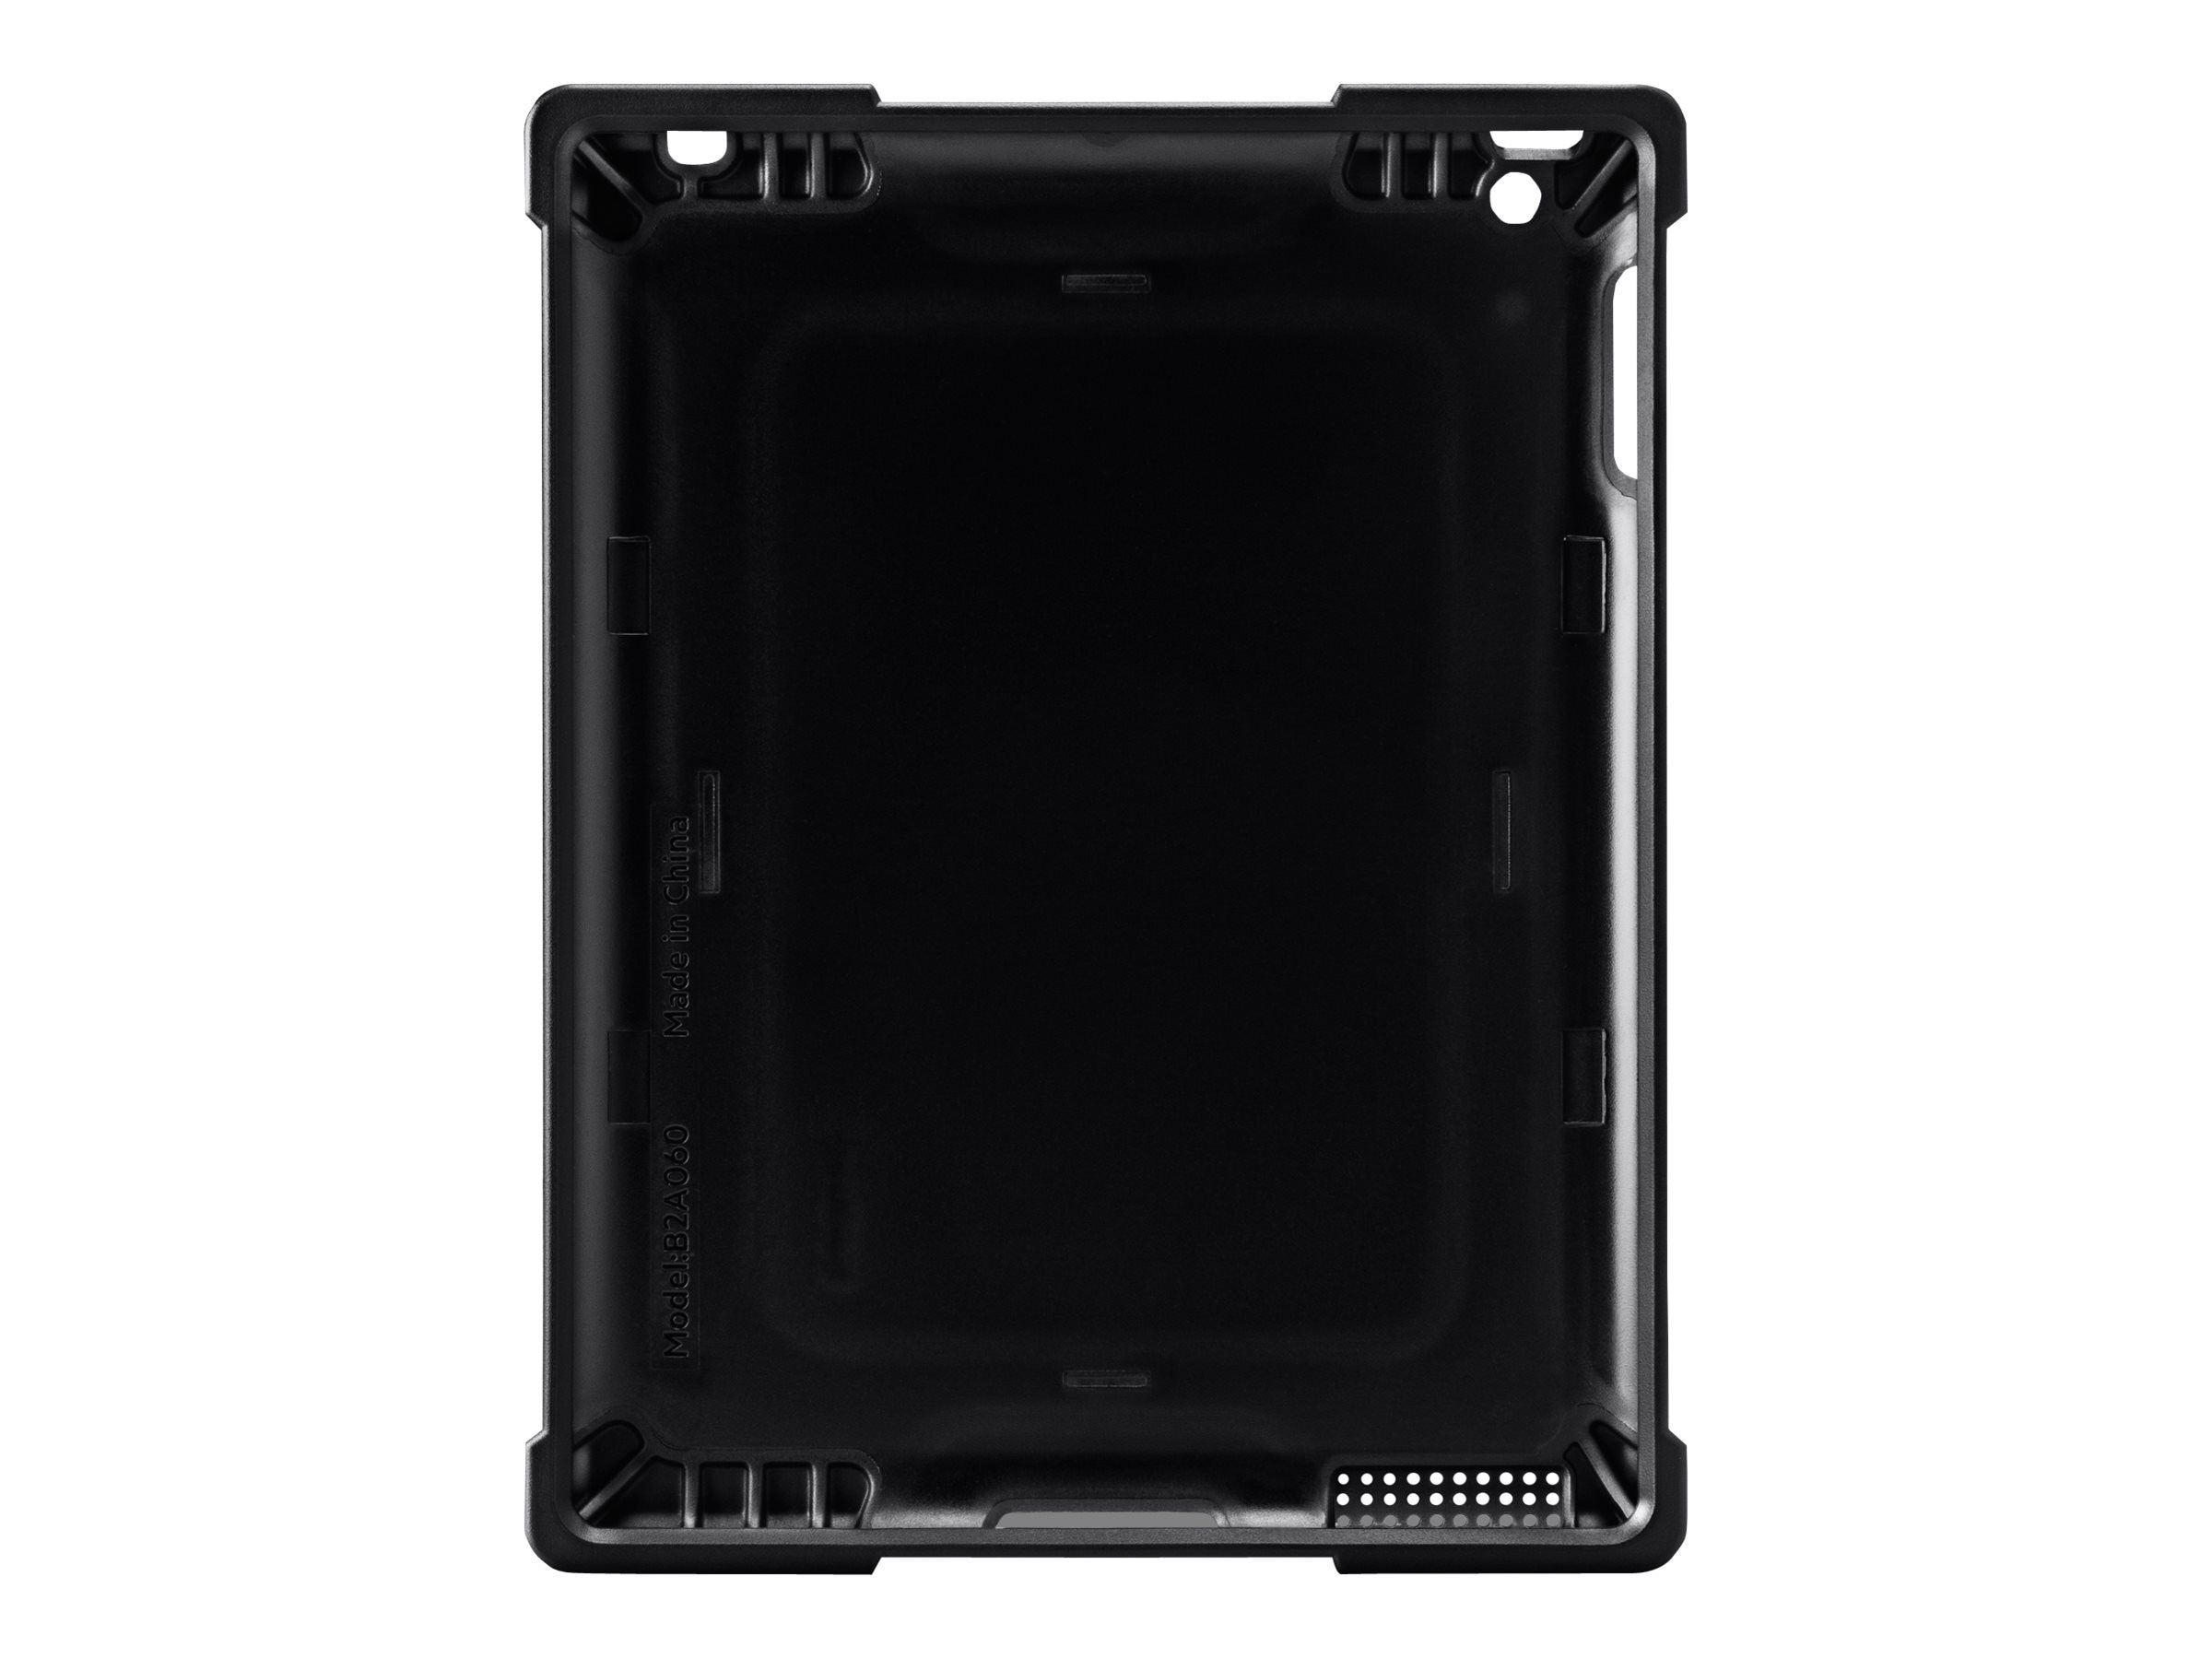 Belkin Air Shield Protective Case for iPad 2 3 4, Black